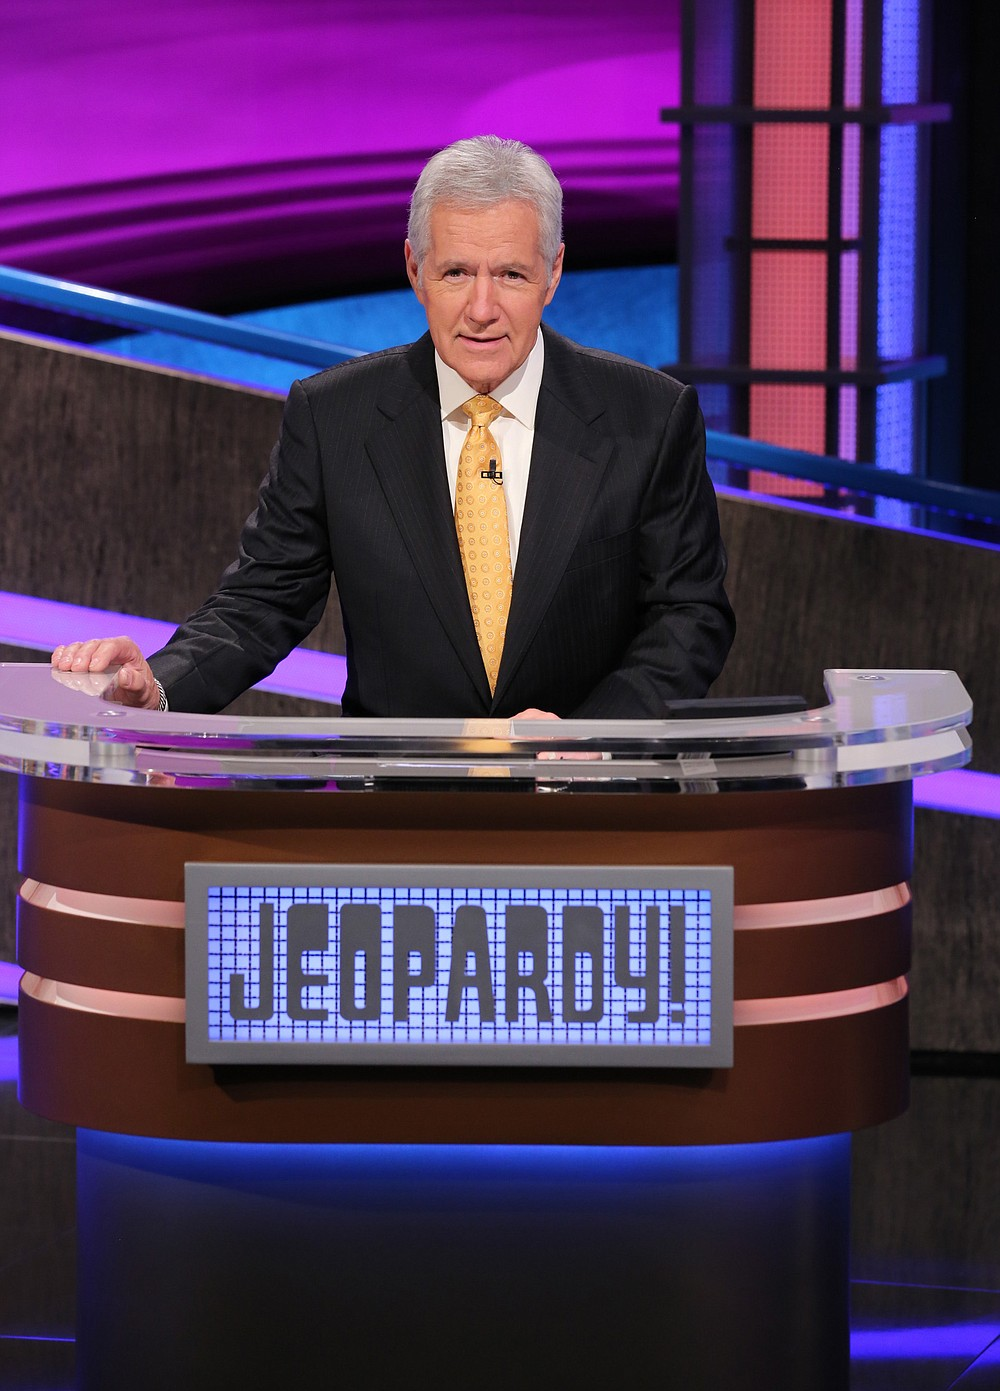 """This image released by Jeopardy! shows Alex Trebek, host of the game show """"Jeopardy!"""" The program won outstanding game show at the 47th annual Daytime Emmy Awards. Trebek also won outstanding game show host. (Jeopardy! via AP)"""